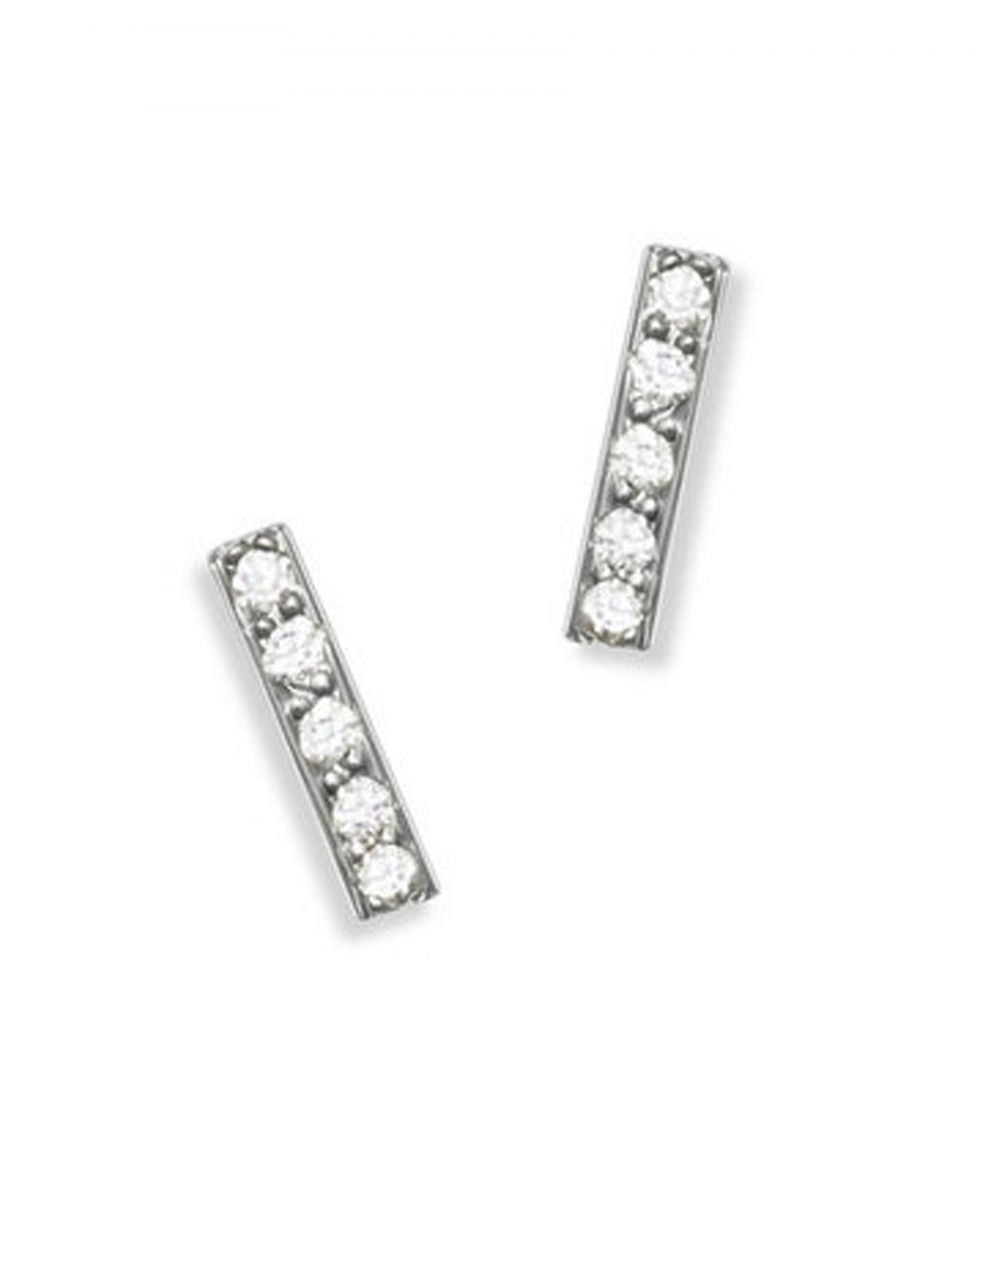 Mini Pavé Bar Stud<br /><i><small>14K White Gold with White Diamonds</small></i><br /> - Eddera